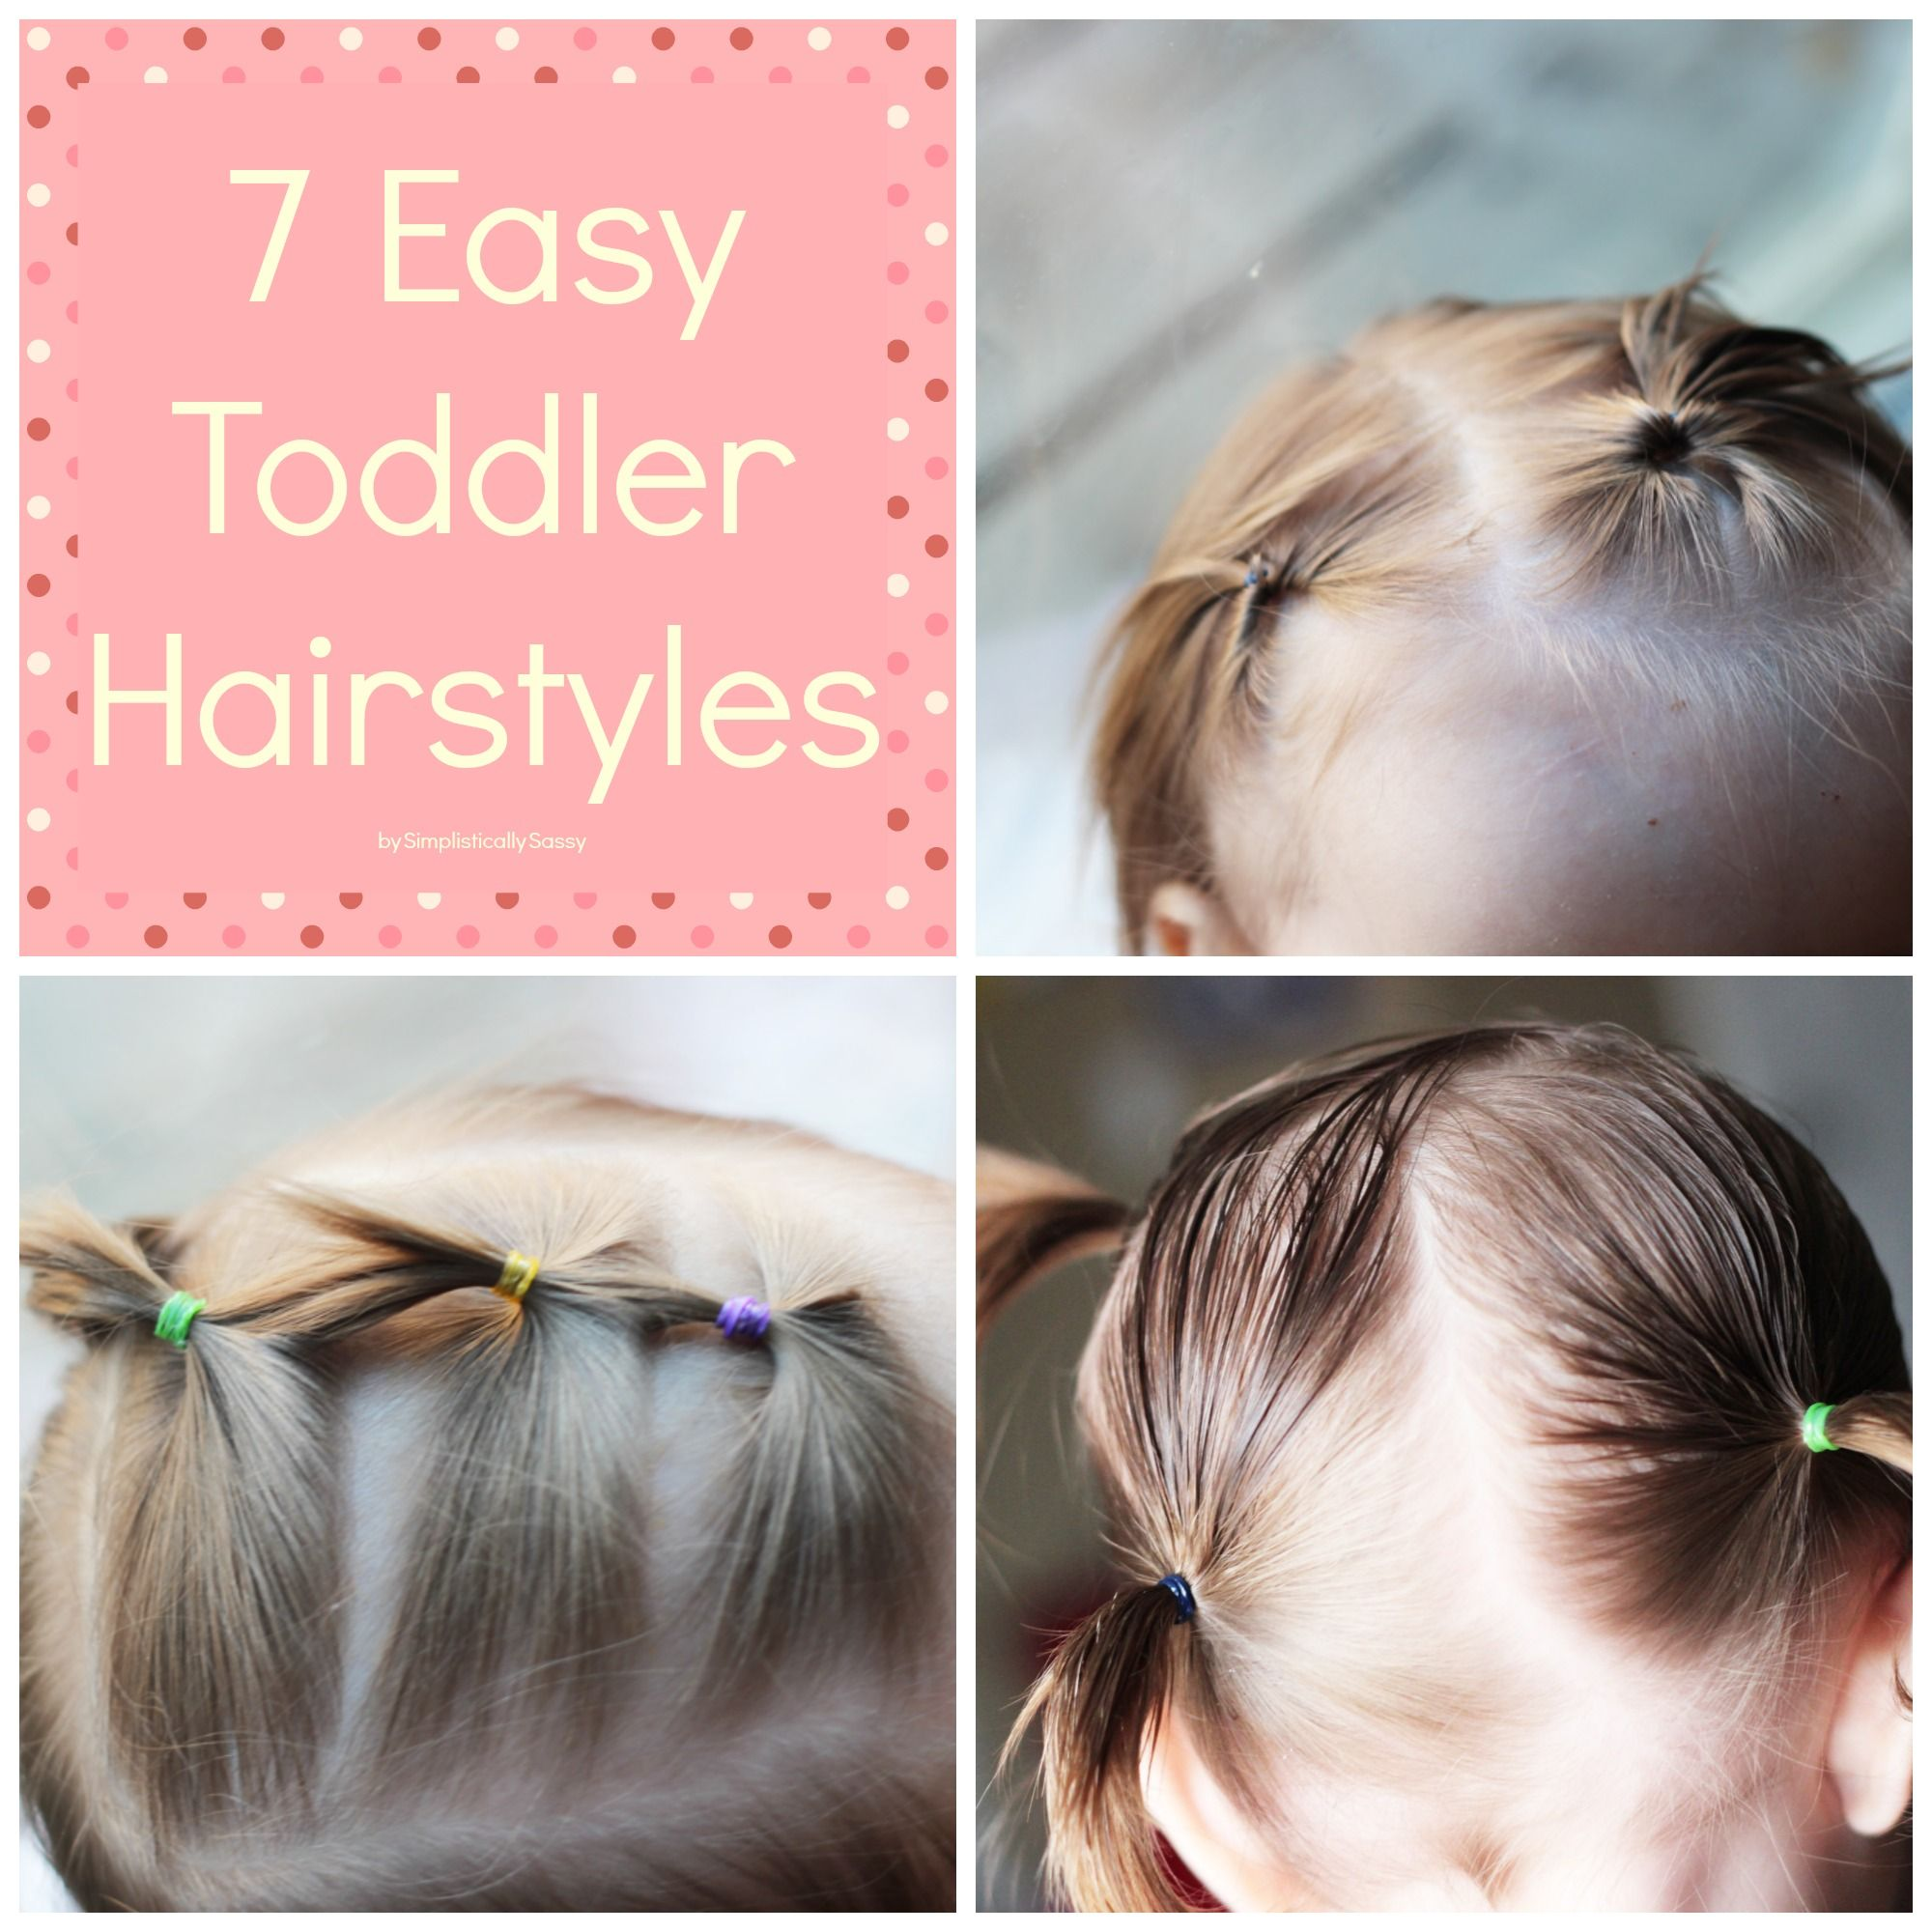 Easy Toddler Hairstyles By Simplistically Sassy Easy Toddler Hairstyles Toddler Hair Easy Little Girl Hairstyles